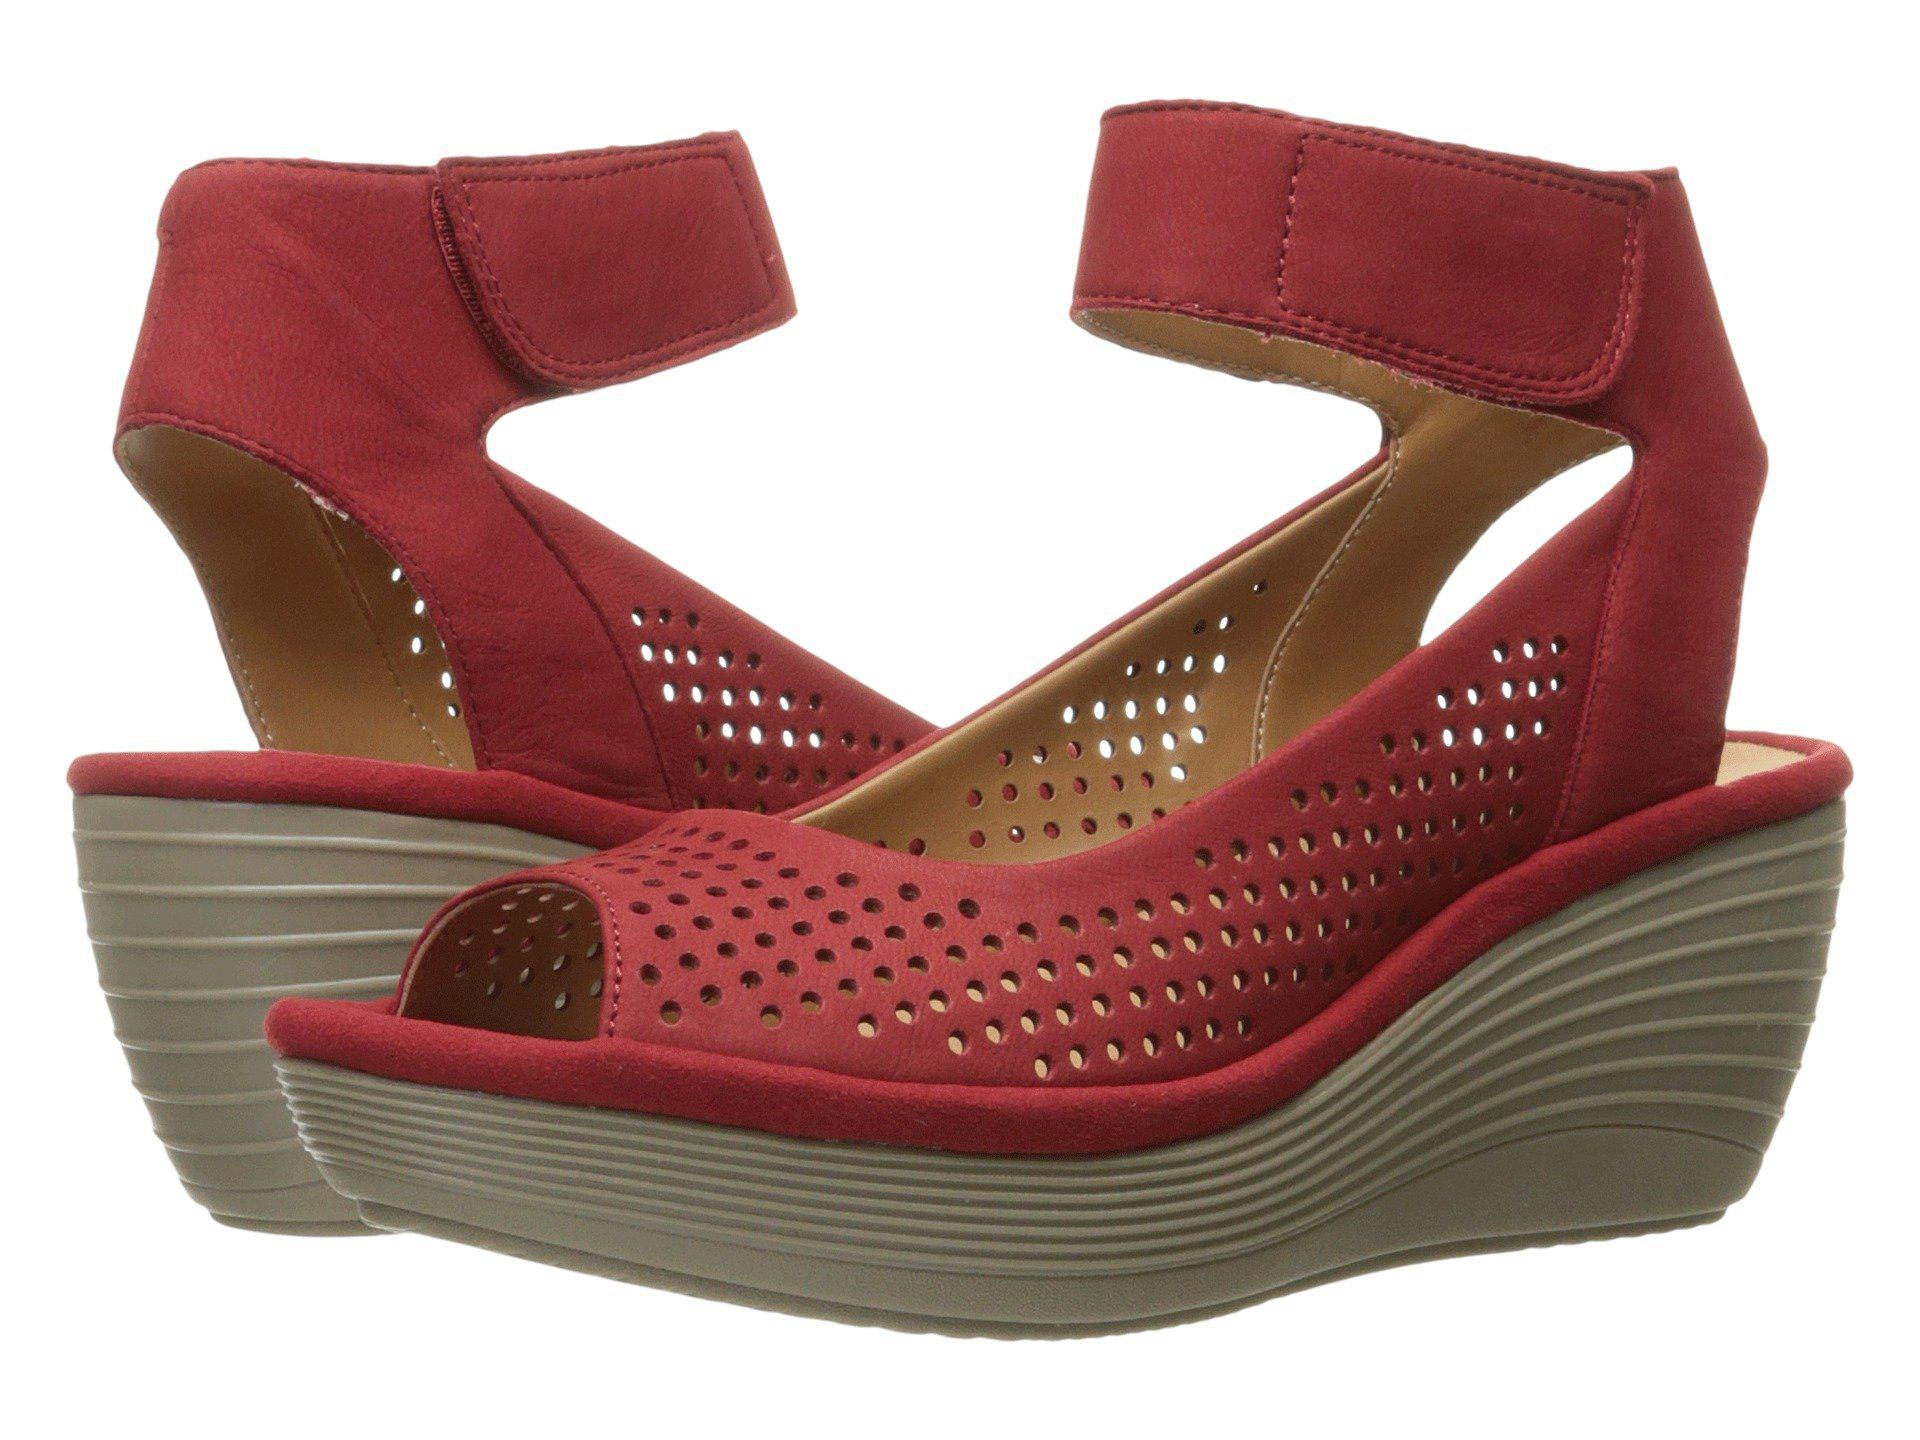 467e3cb27a Clarks Reedly Salene Wedge Sandal in Red - Lyst